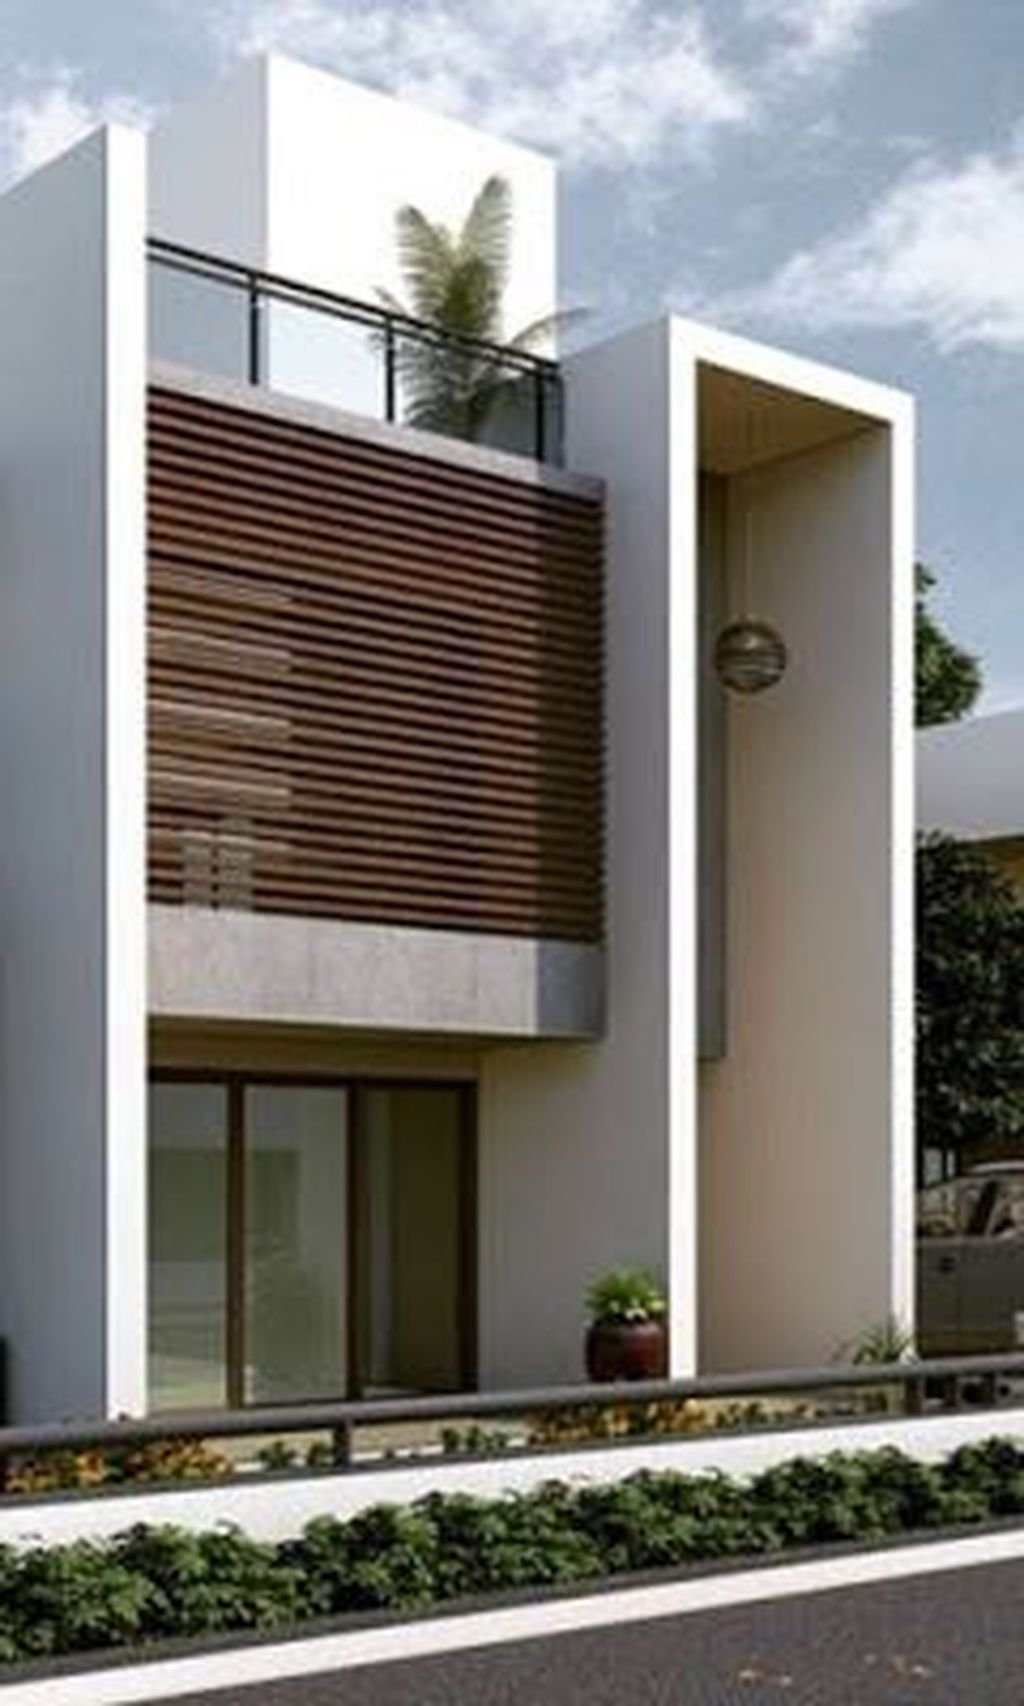 30 Stunning Minimalist Houses Design Ideas That Simple Unique And Modern Facade House House Architecture Design Minimalist House Design